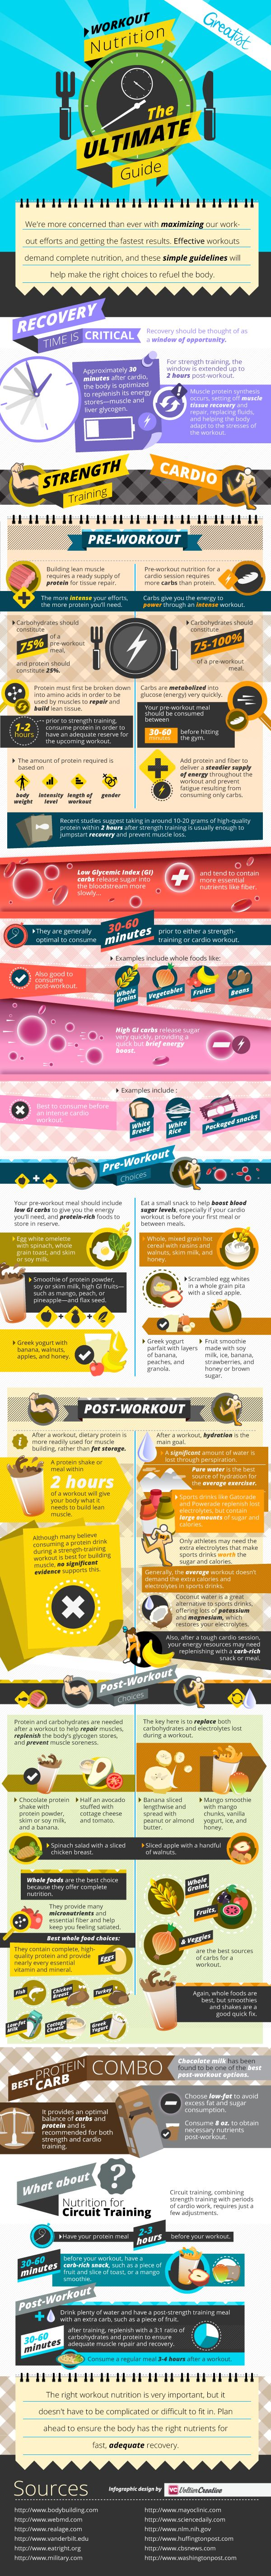 The Complete Guide to Workout Nutrition [Infographic] | Greatist